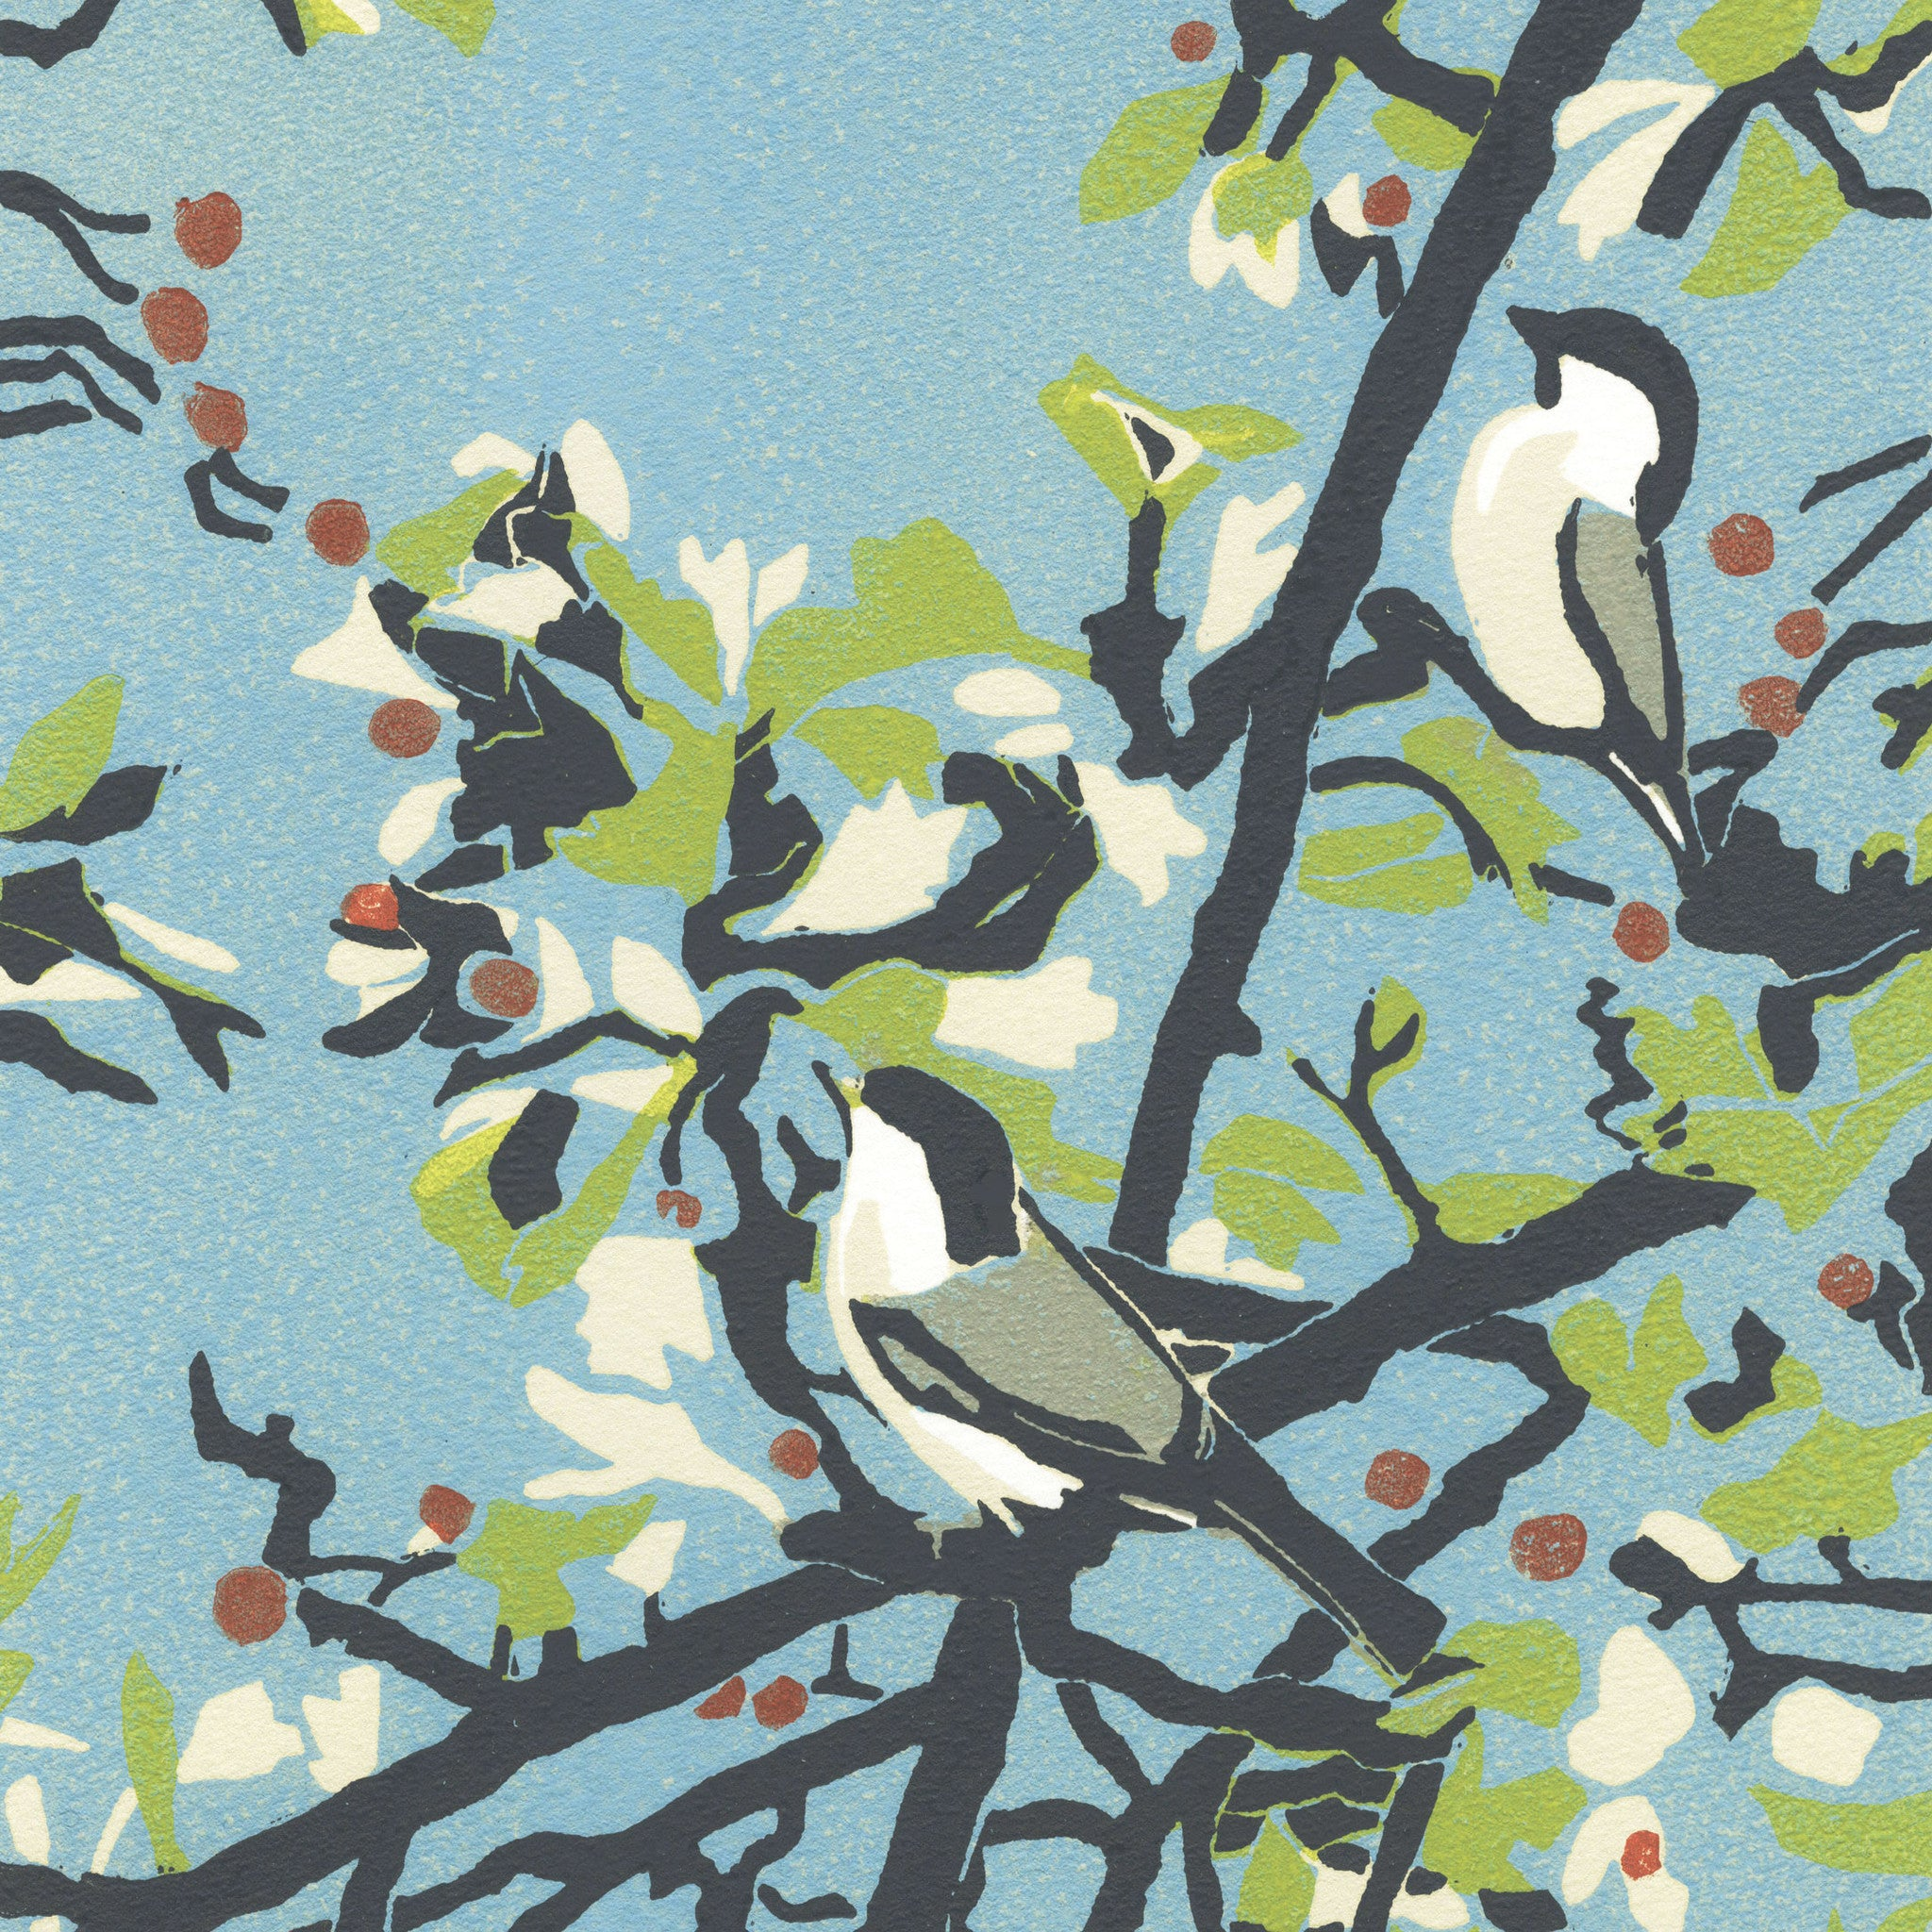 Willow Tits by Max Angus, Art Greeting Card, Linocut, Willow tits on branches